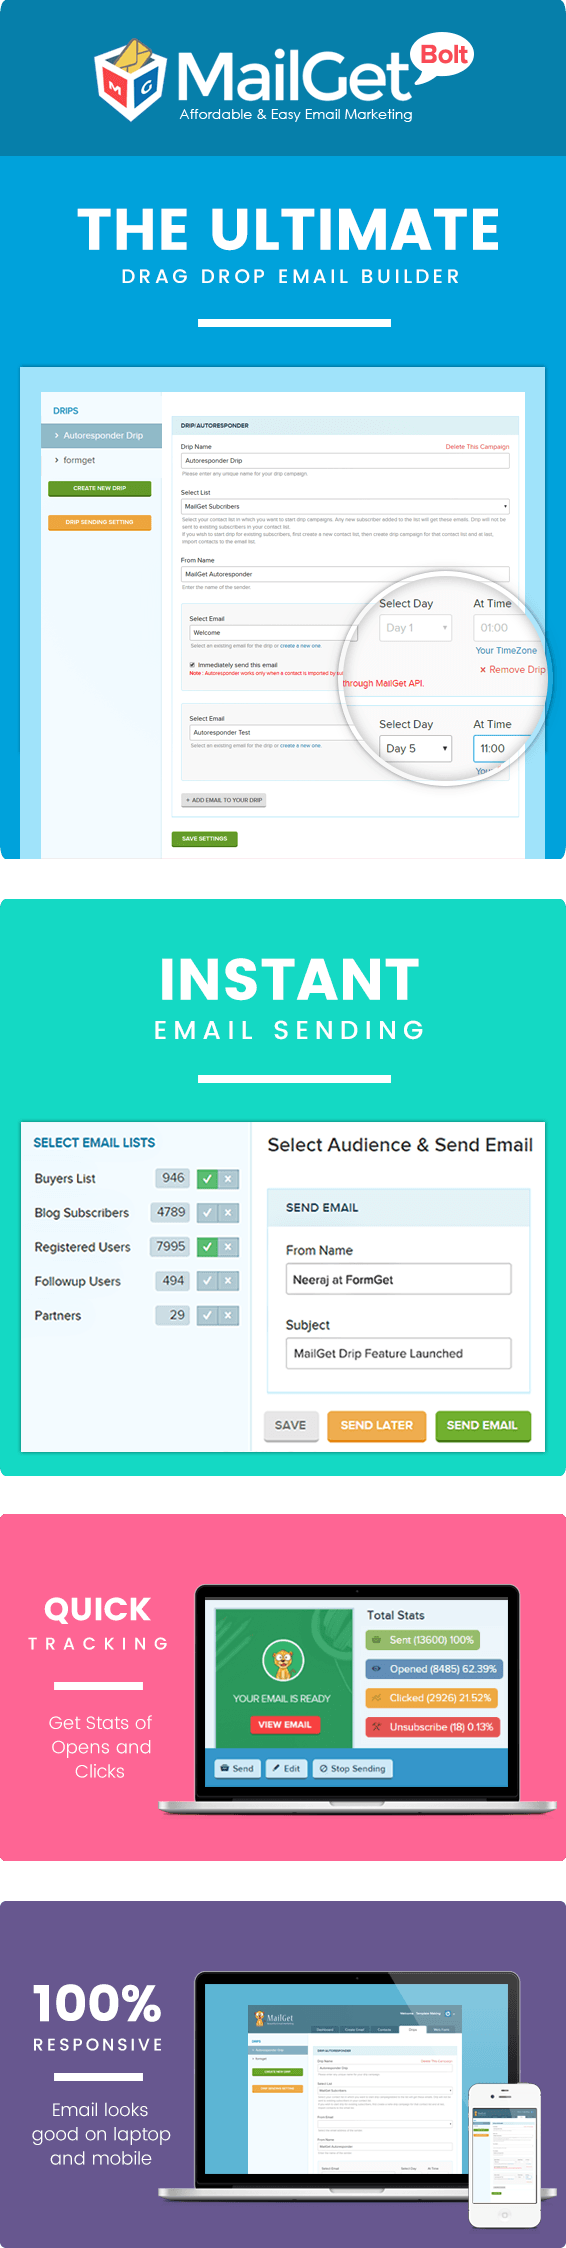 MailGet Bolt - Autoresponder Email Marketing Service